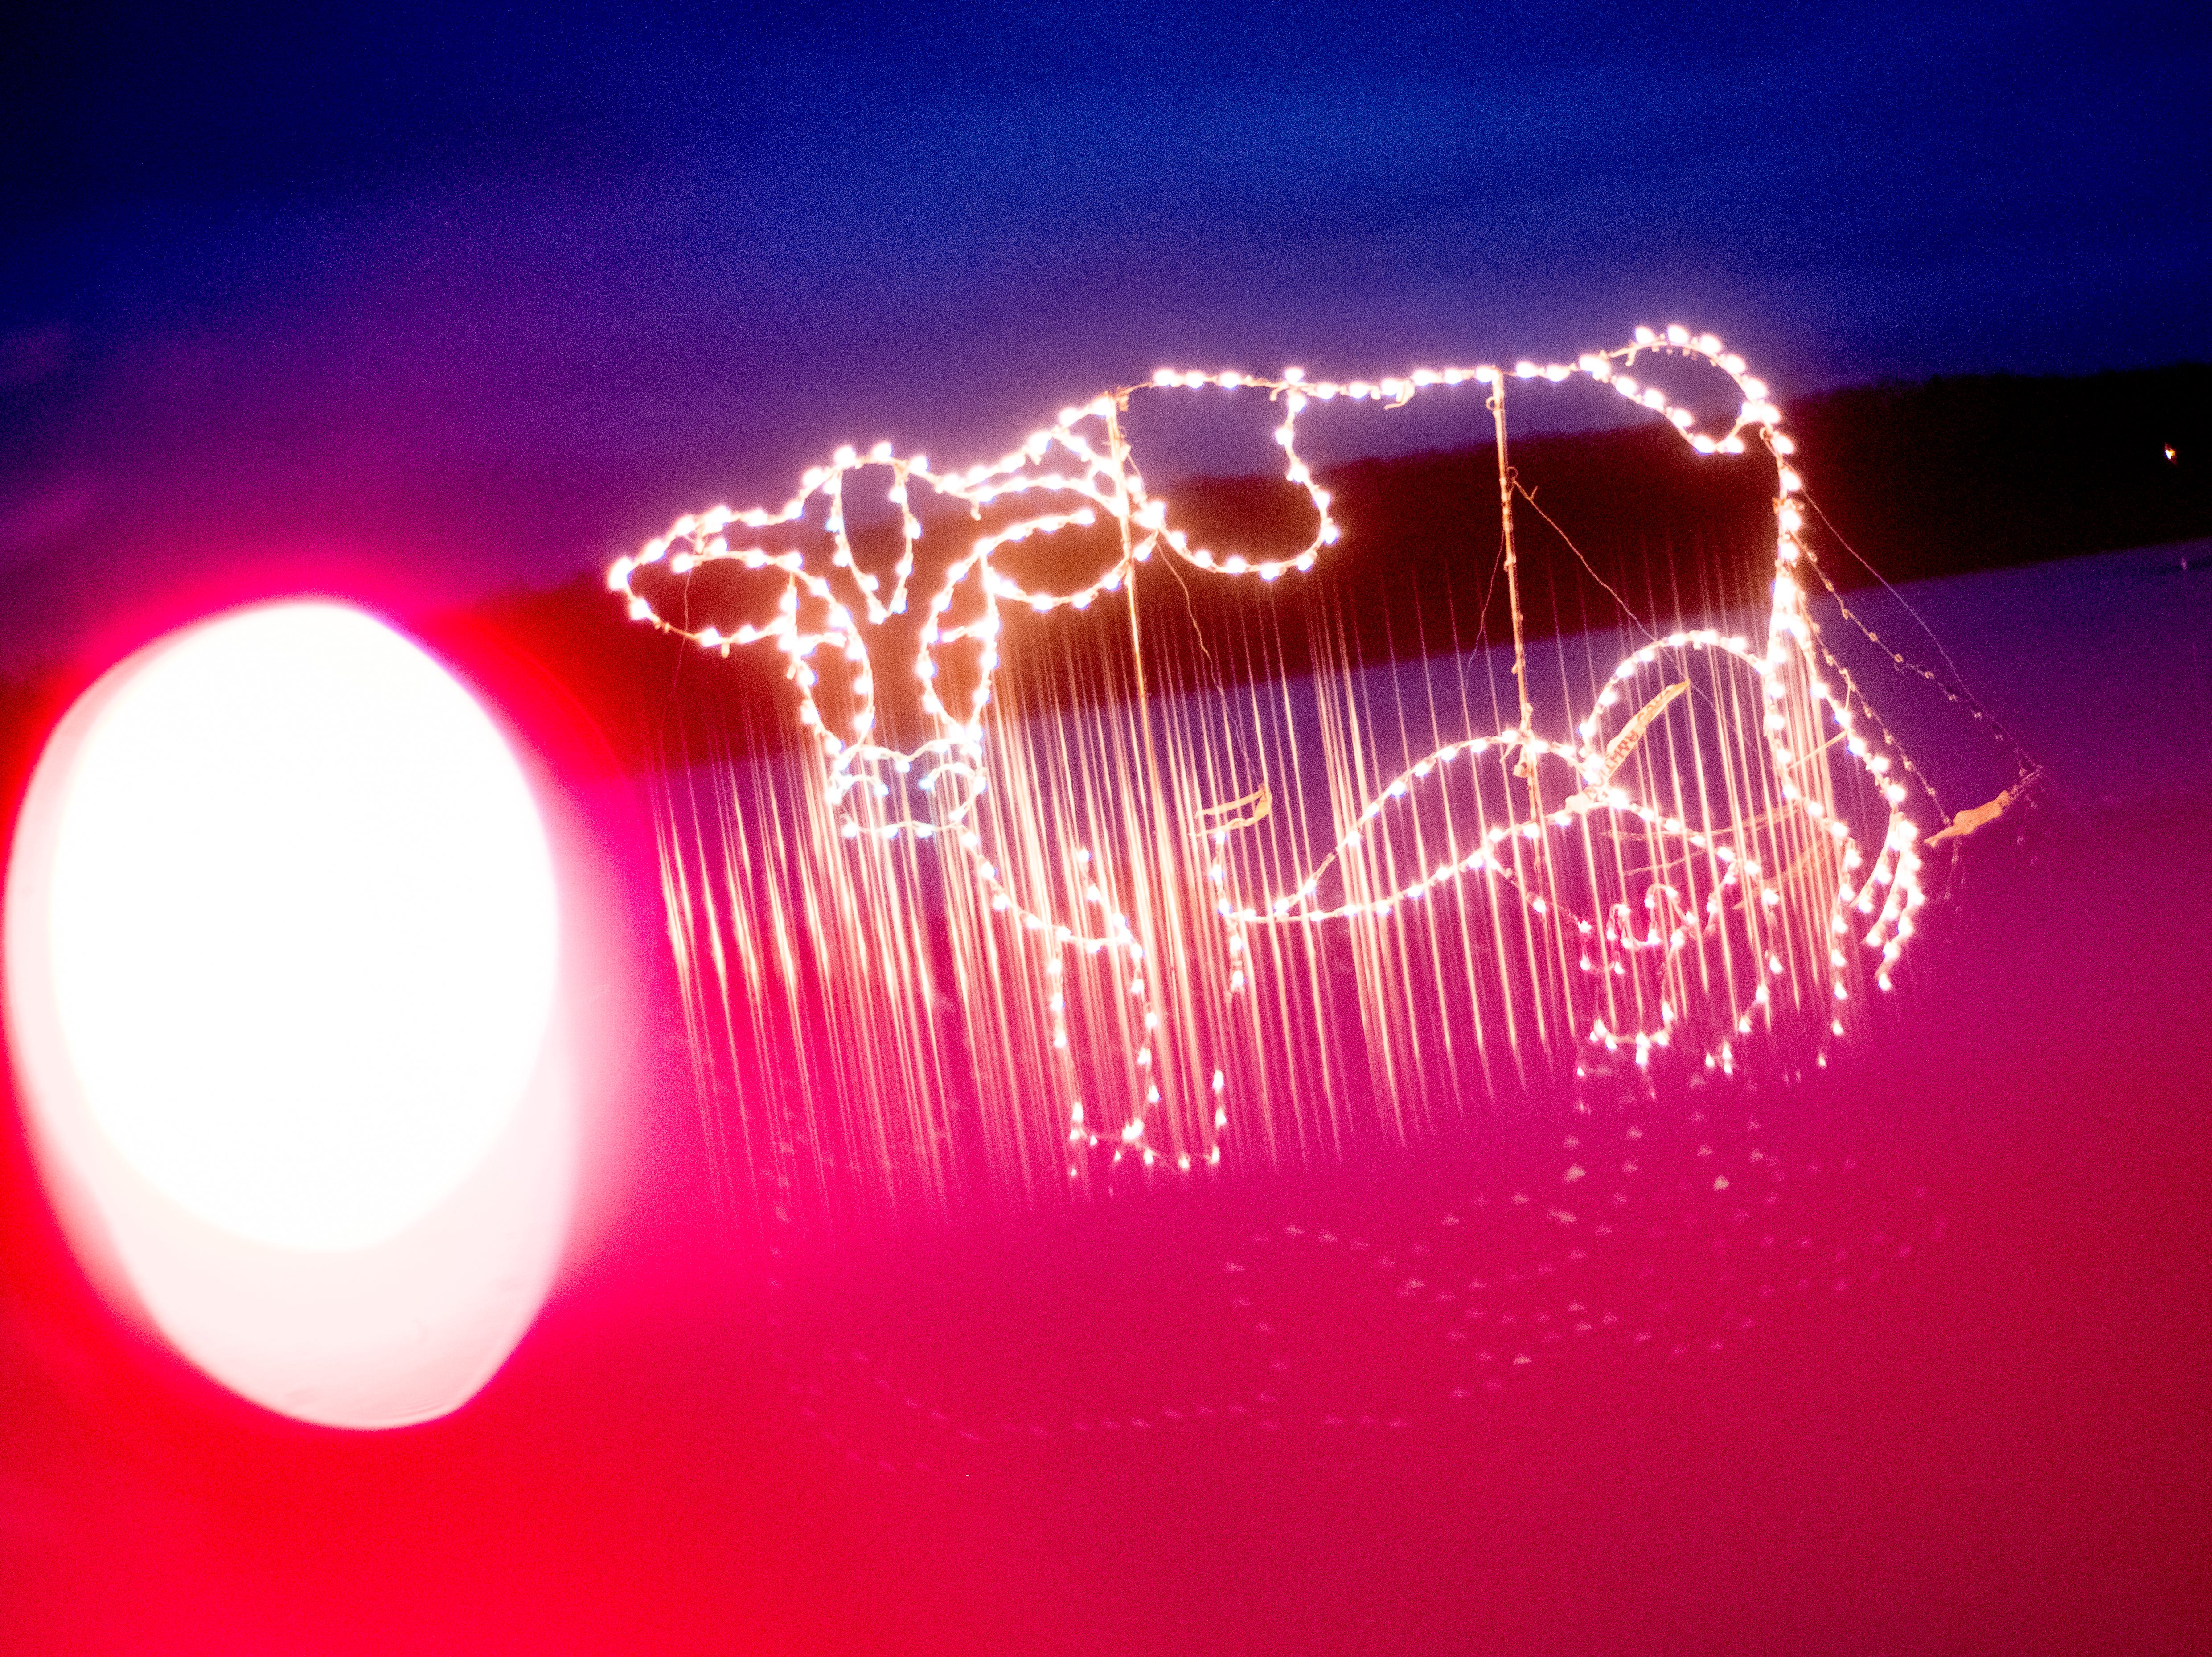 A cow light display at Knox CountyÕs 20th annual Holiday Festival of Lights kick off at The Cove at Concord Park in Farragut, Tennessee on Friday, December 21, 2018. The family-friendly event is free and will run through Dec. 29 from 6 to 9 p.m., excluding Christmas Eve and Christmas Day.